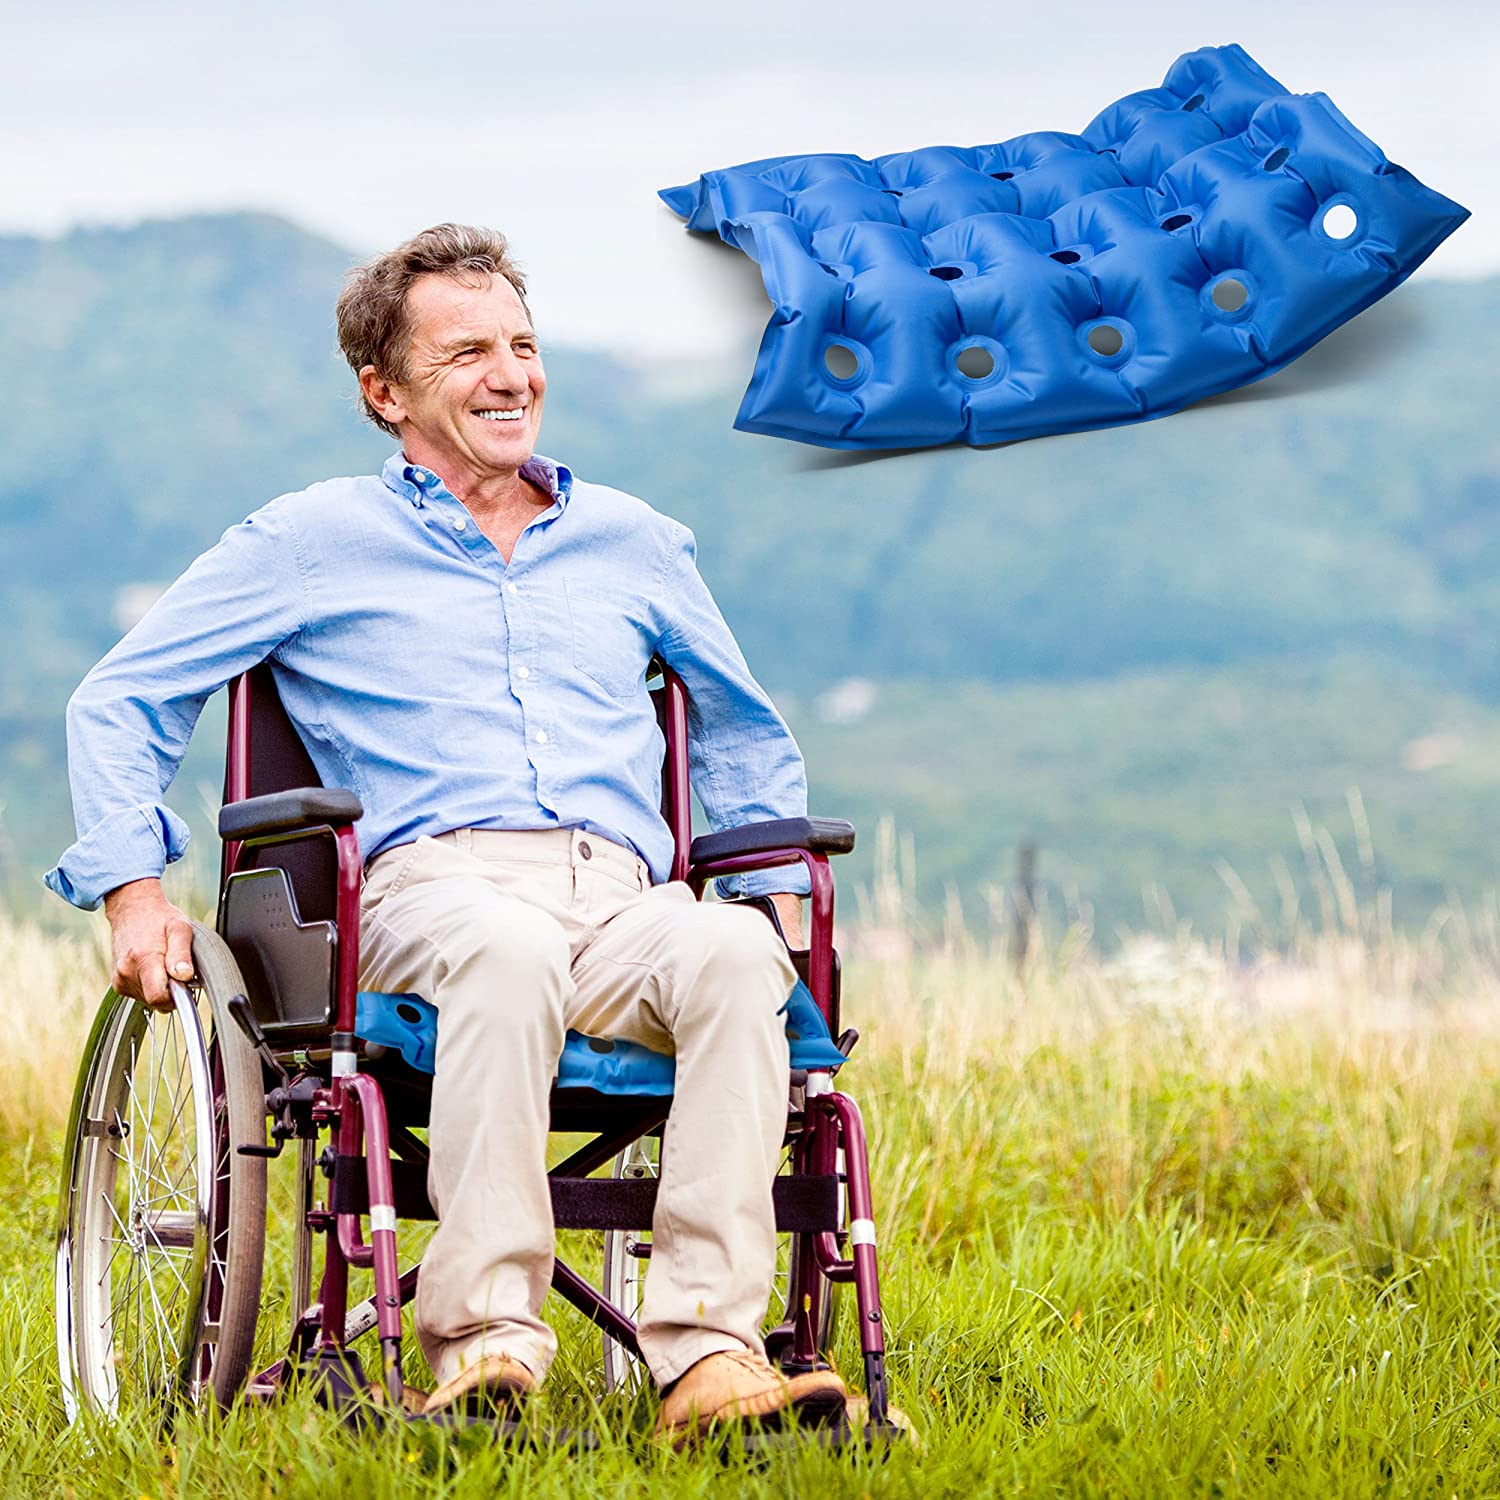 People sitting in waffle chair - Amazon Com Comfycloud Medical Inflatable Waffle Seat Cushion Seat Cushion For Wheel Chair And Prolonged Sitting Health Personal Care